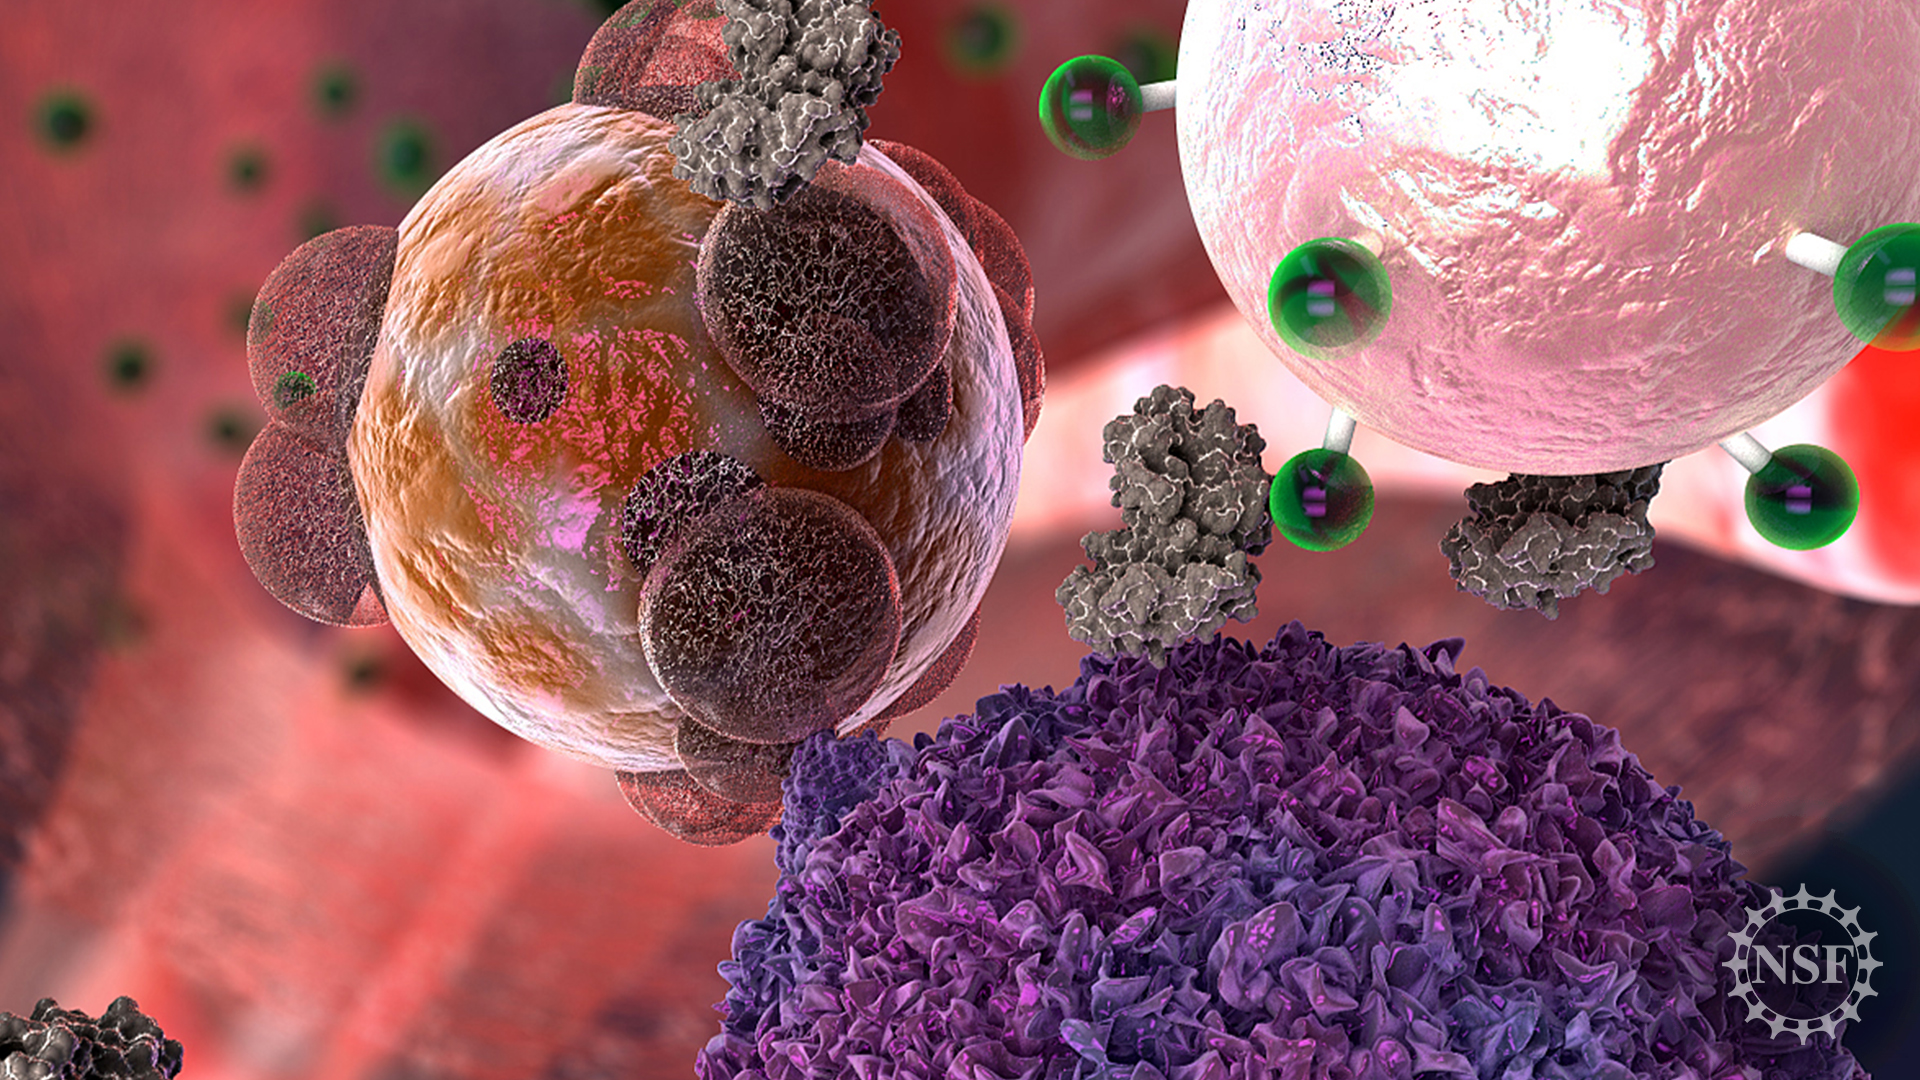 a cell from a transplanted organ is attacked by a T cell